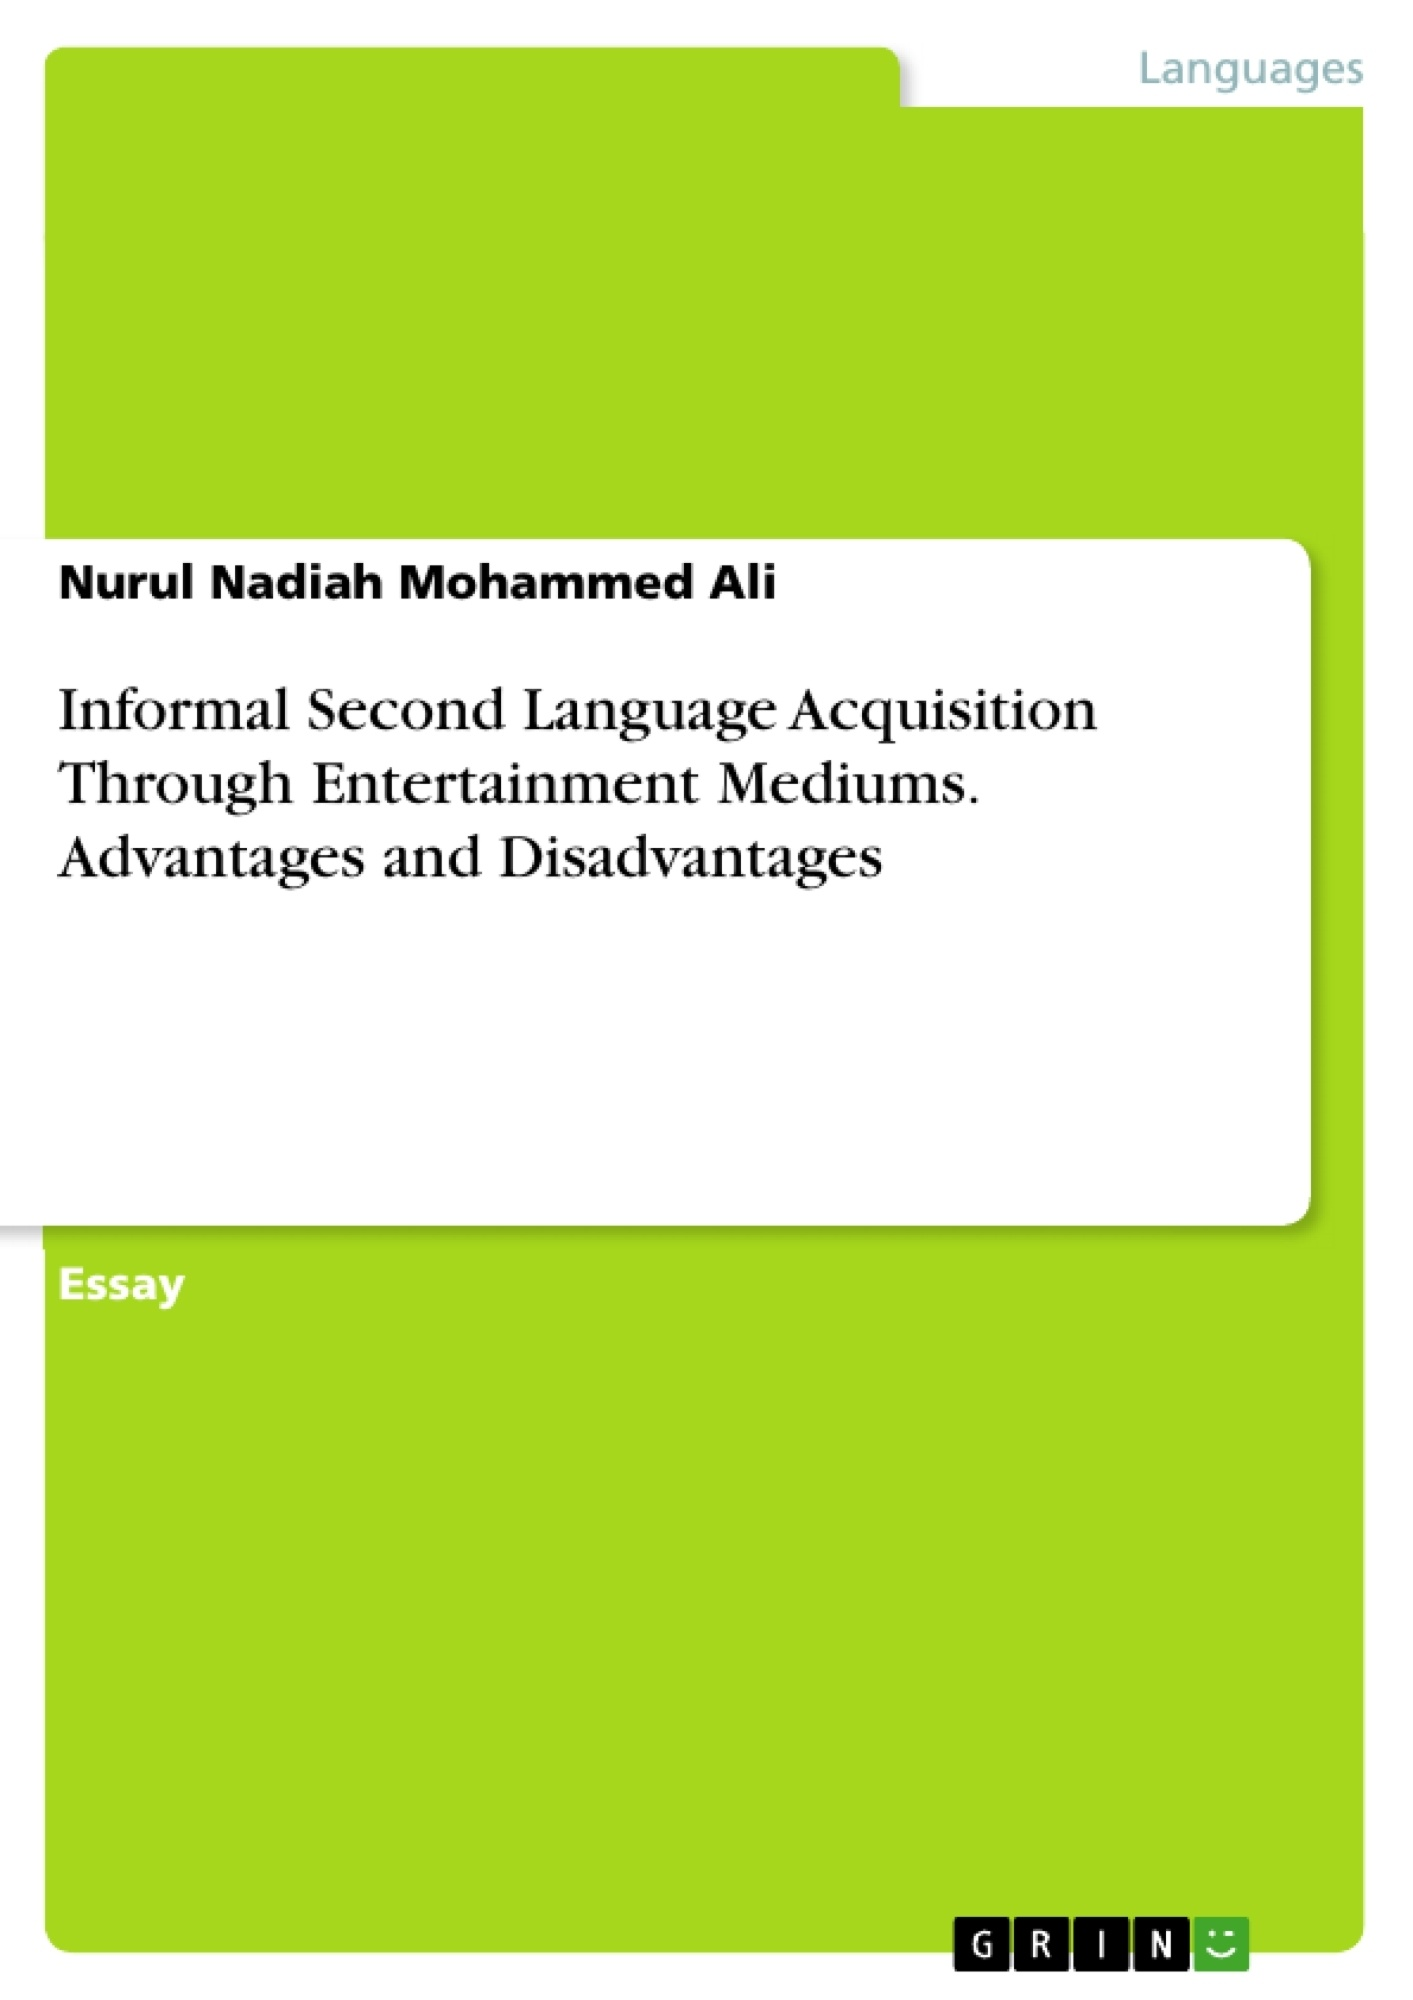 Title: Informal Second Language Acquisition Through Entertainment Mediums. Advantages and Disadvantages